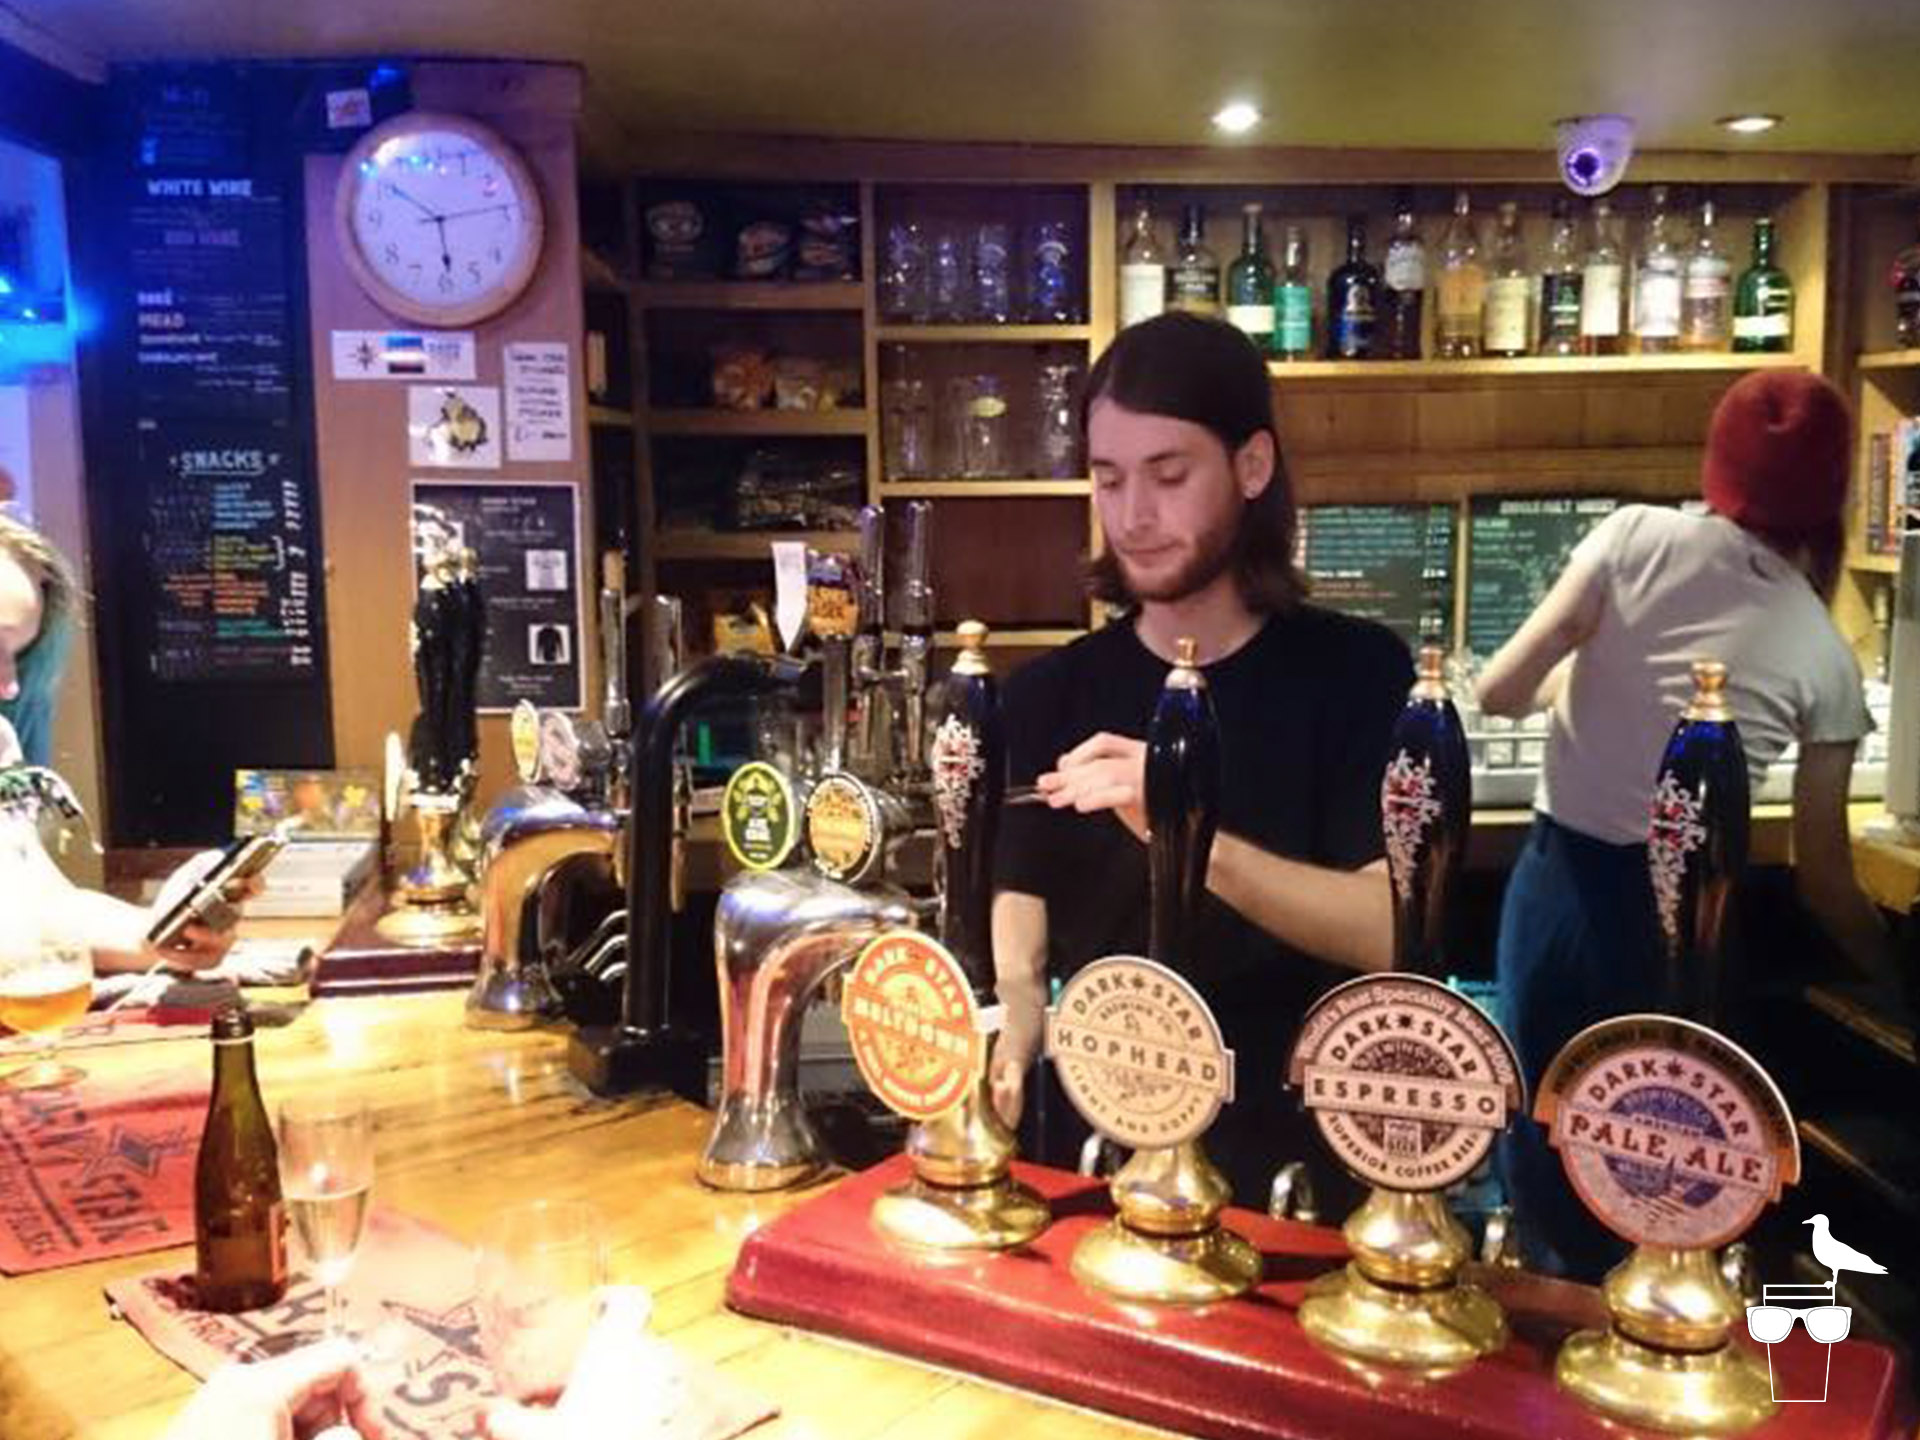 the evening star pub brighton barman pulling a pint at the bar